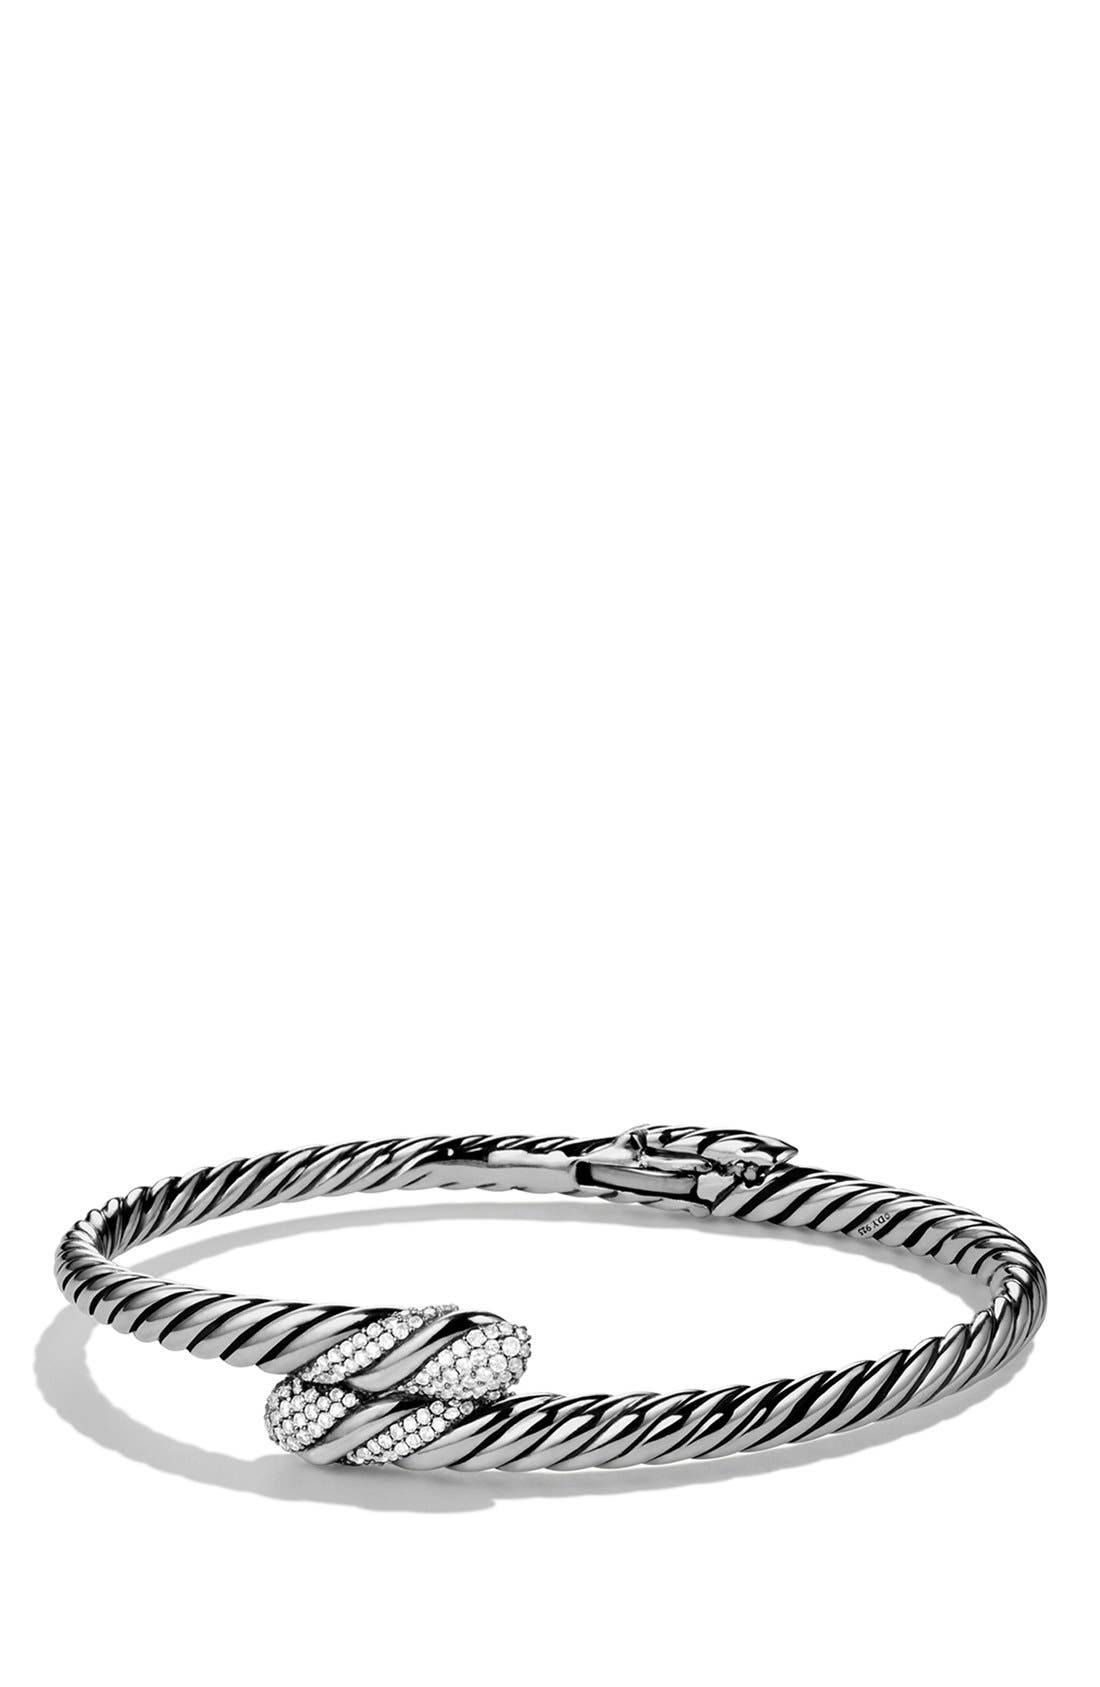 'Willow' Single Row Bracelet with Diamonds,                             Main thumbnail 1, color,